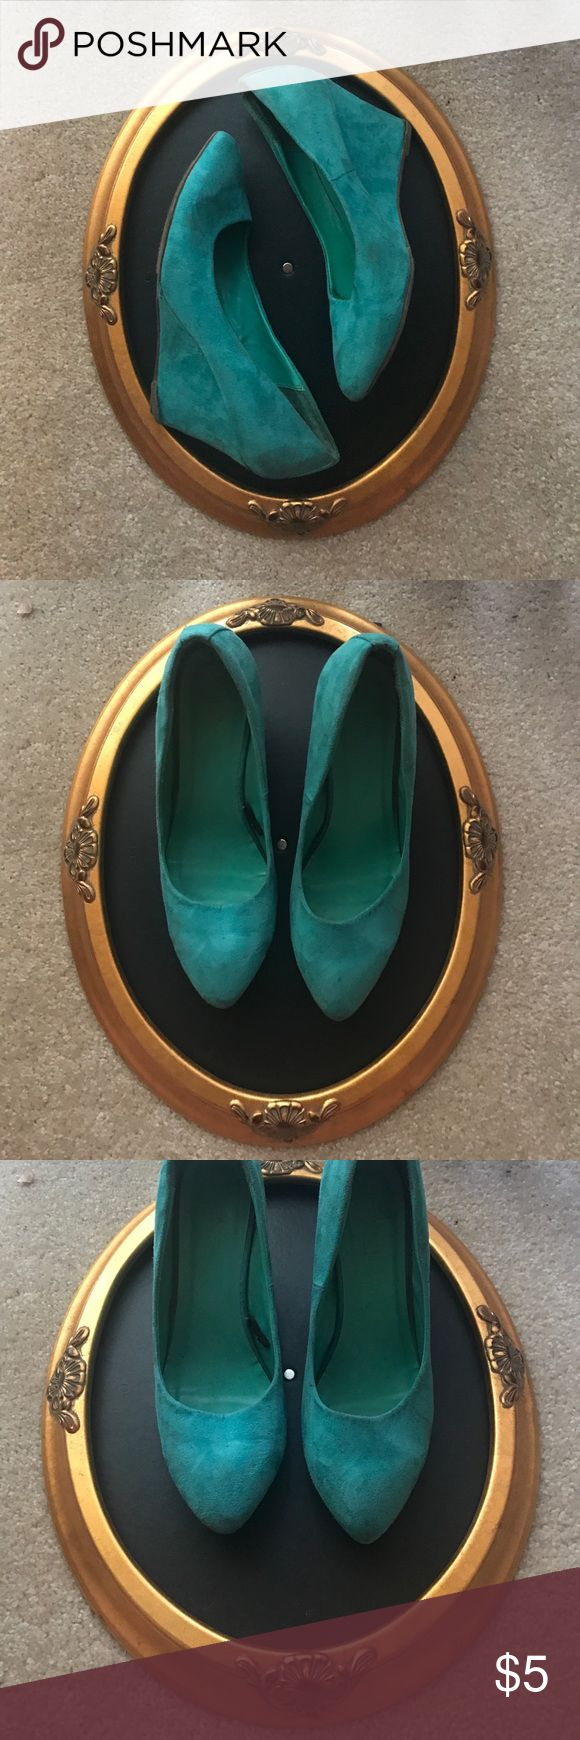 Teal wedges From forever 21, they show signs of wear but still cute and in good shape Forever 21 Shoes Heels